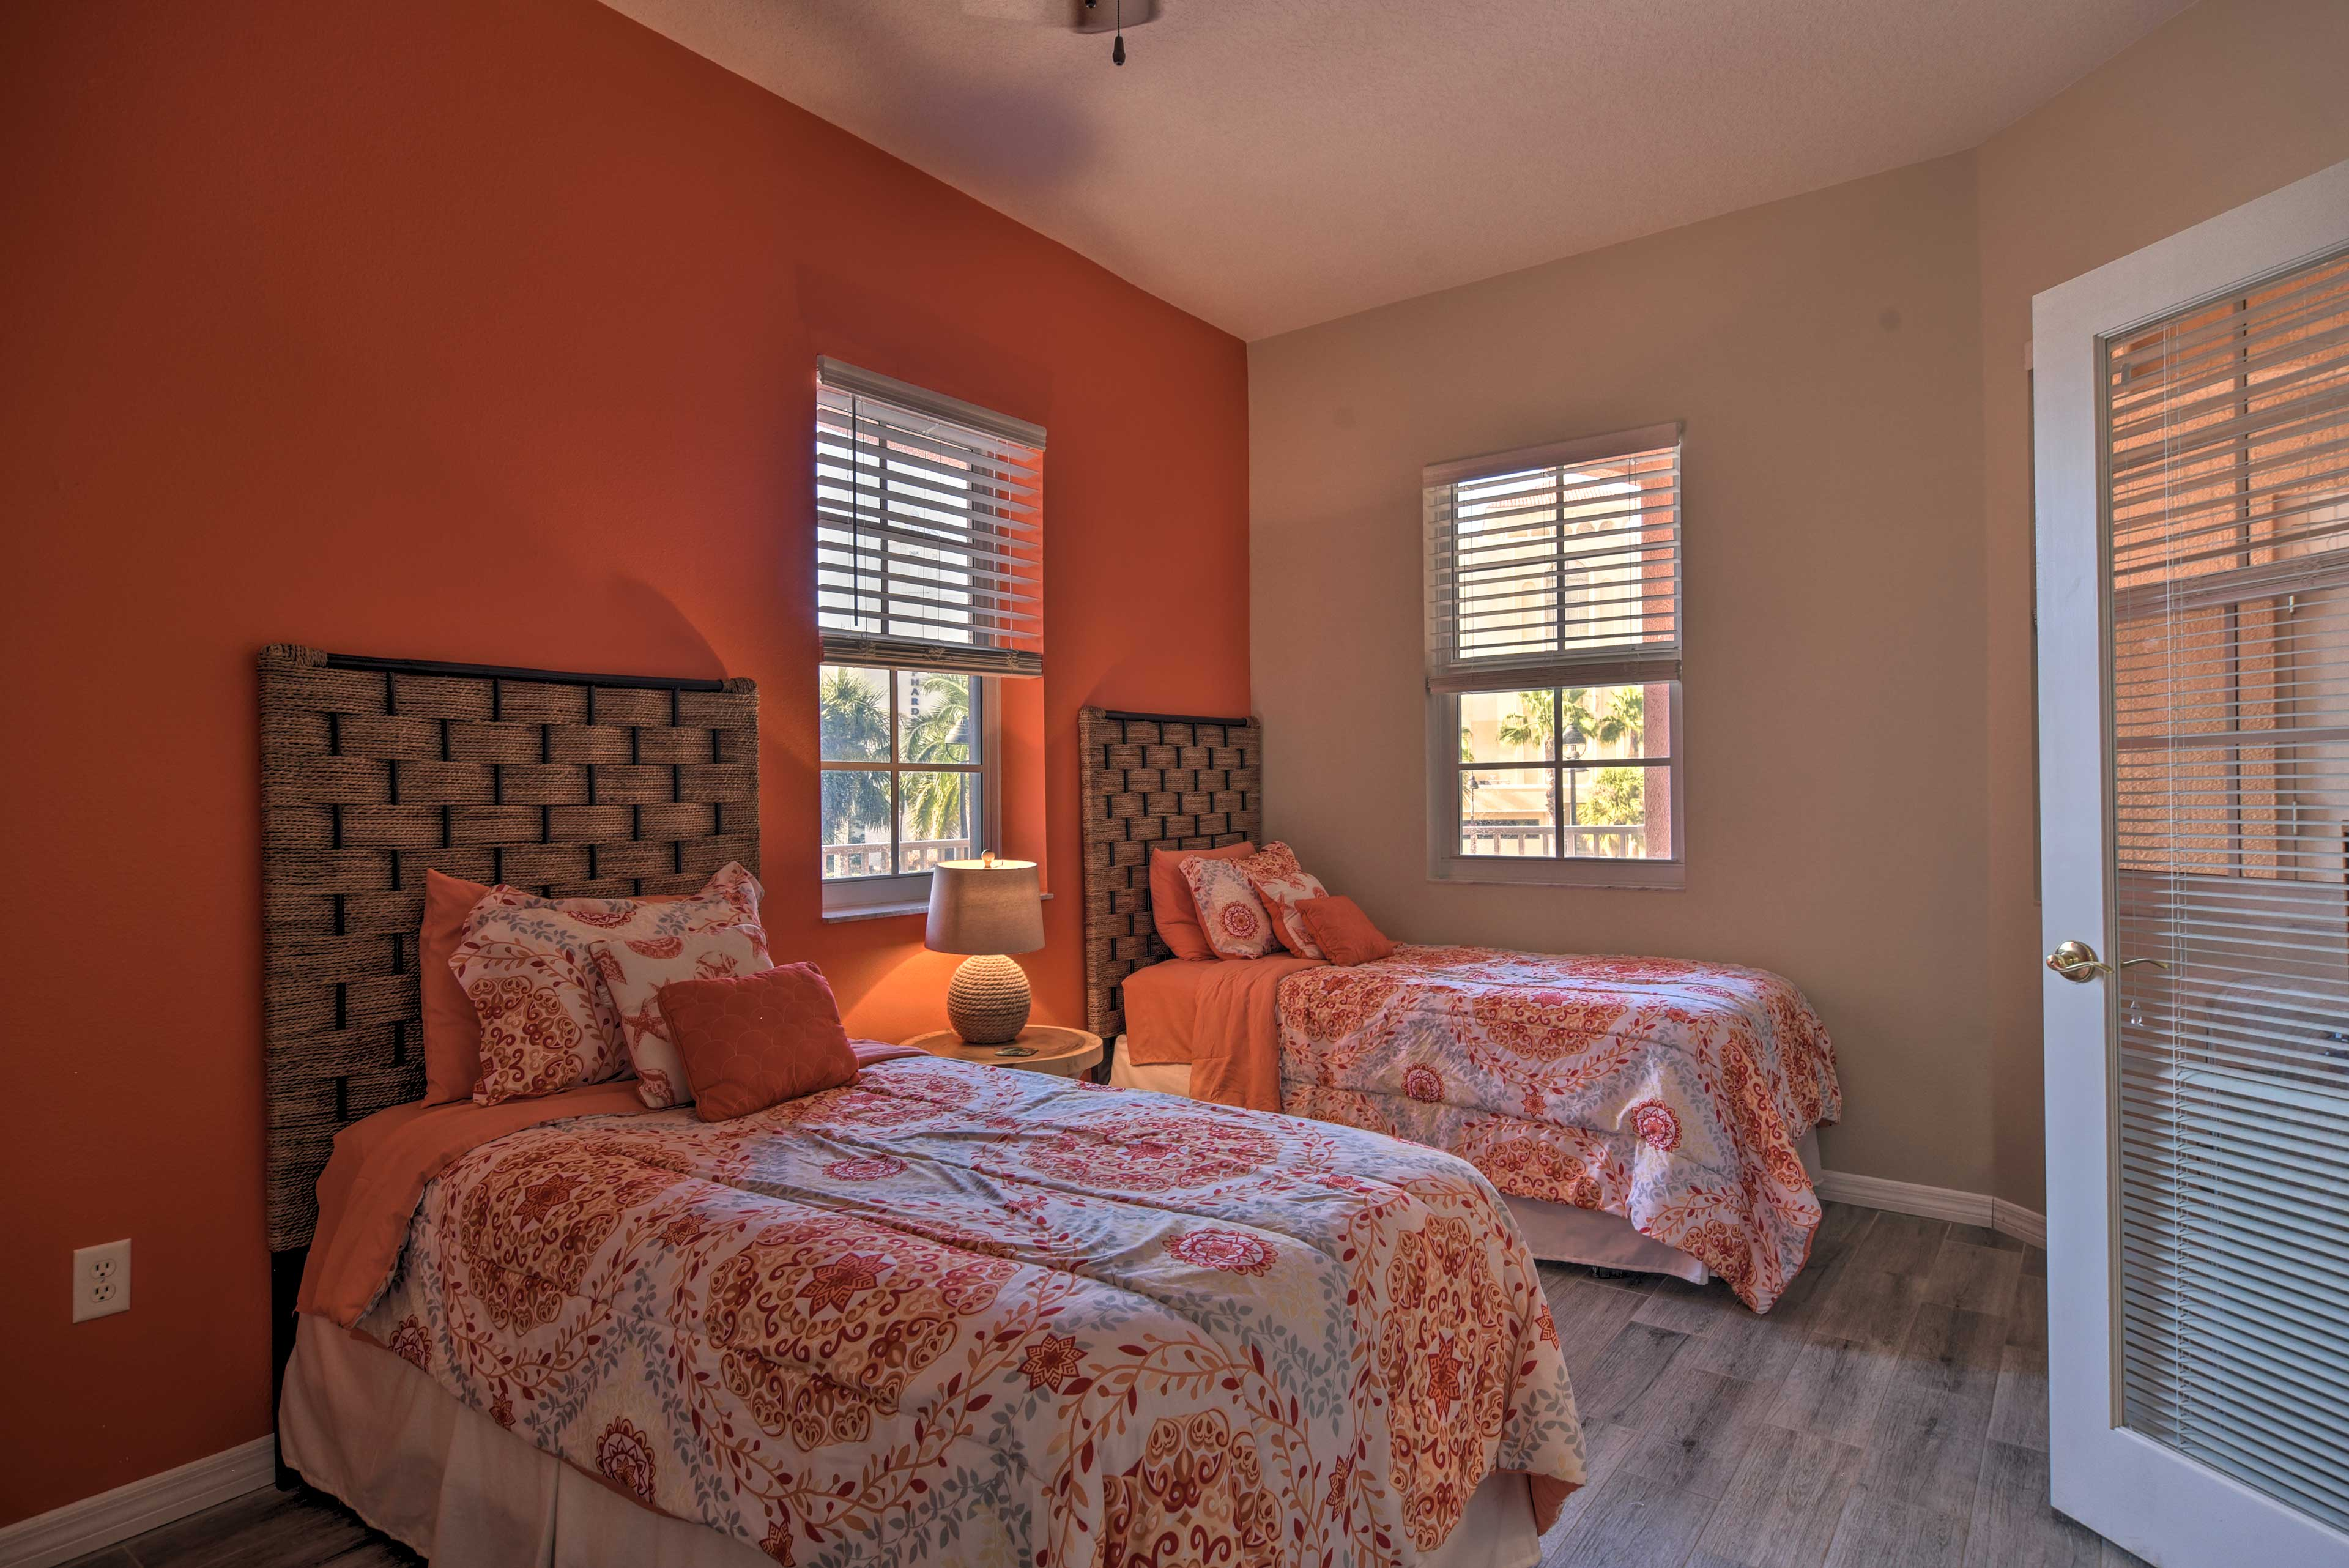 Bedroom | 2 Twin Beds | Linens Provided